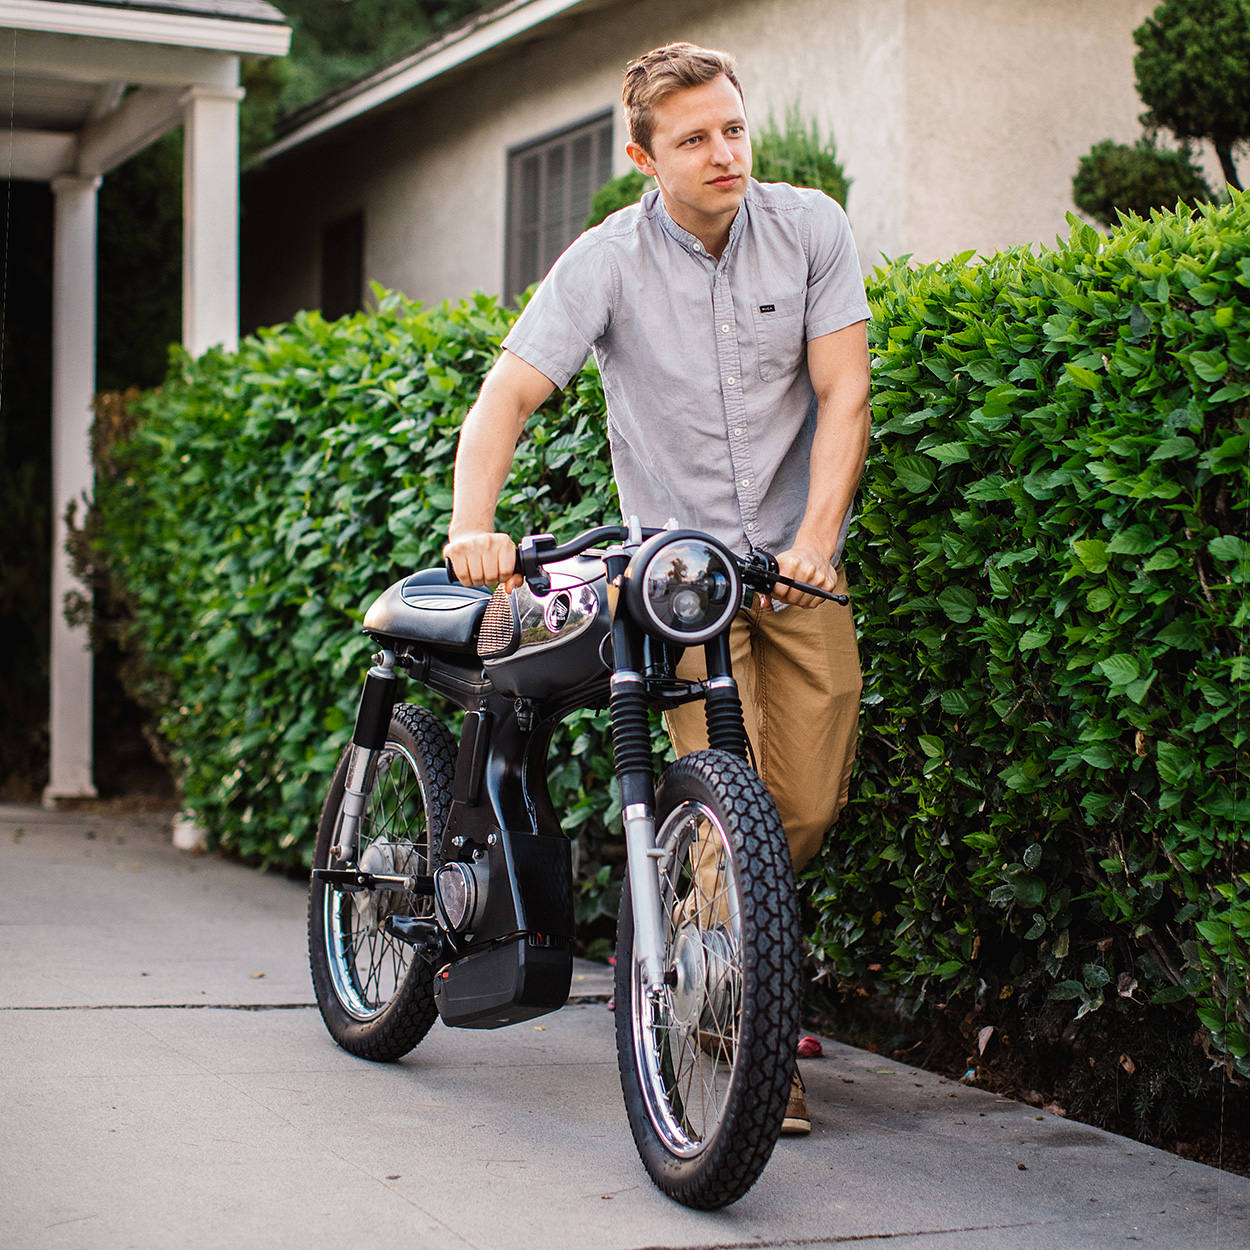 The electric moped that won a global bike build off: Aaron Laniosz's Honda S90